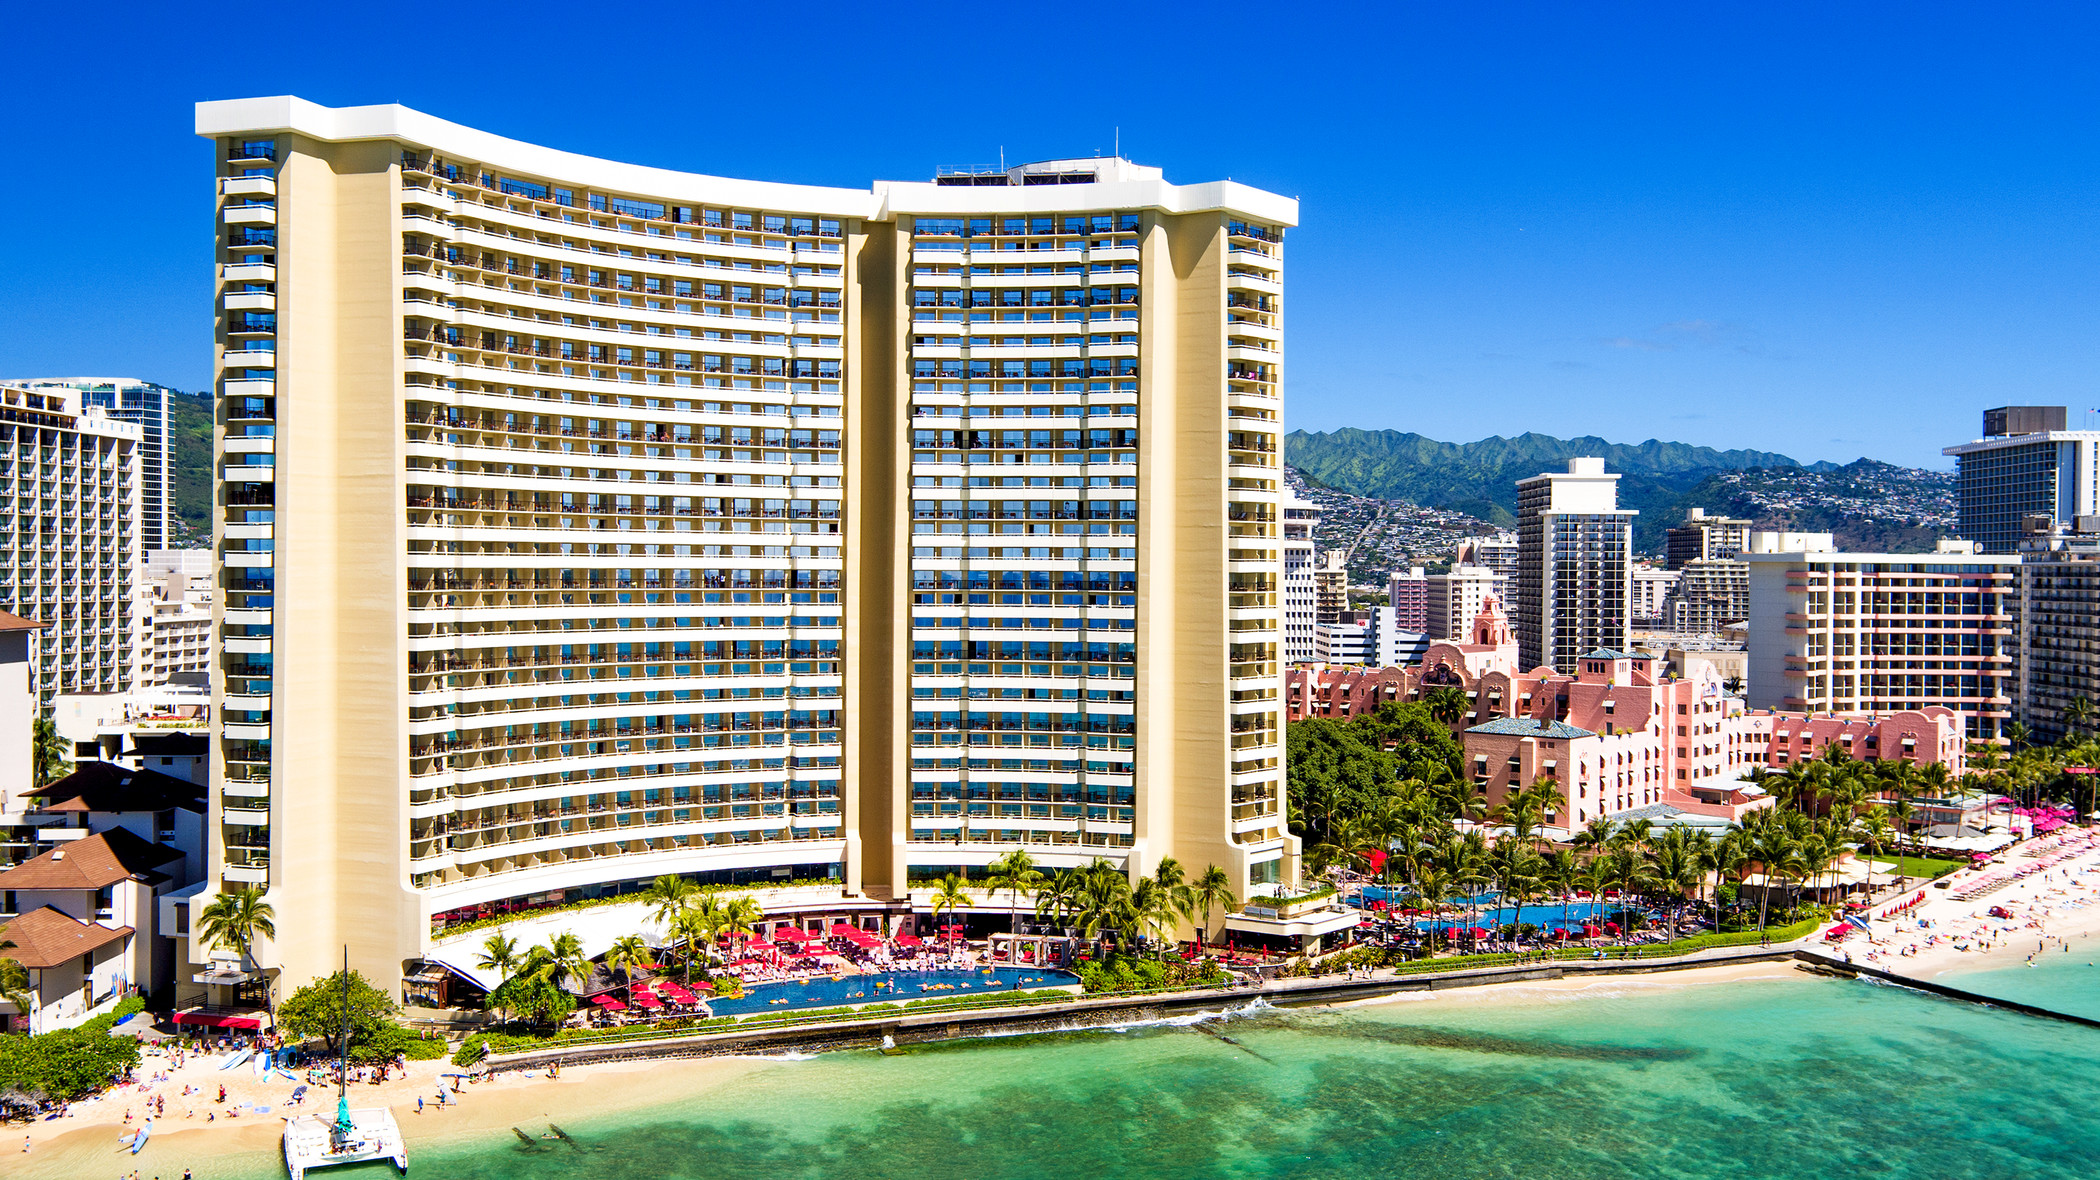 Sheraton Waikiki is LEED Gold